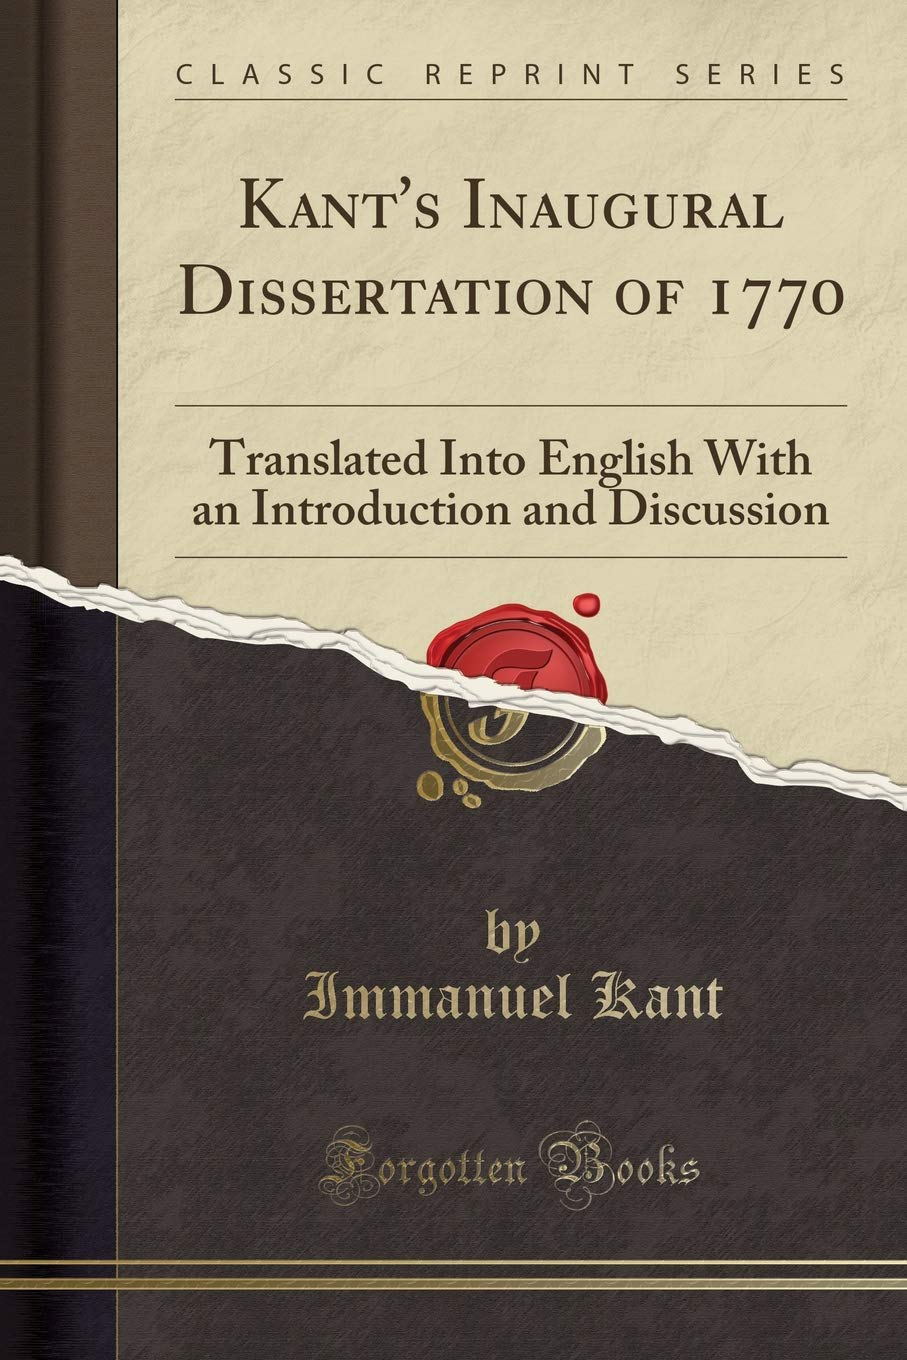 kants inaugural dissertation of 1770